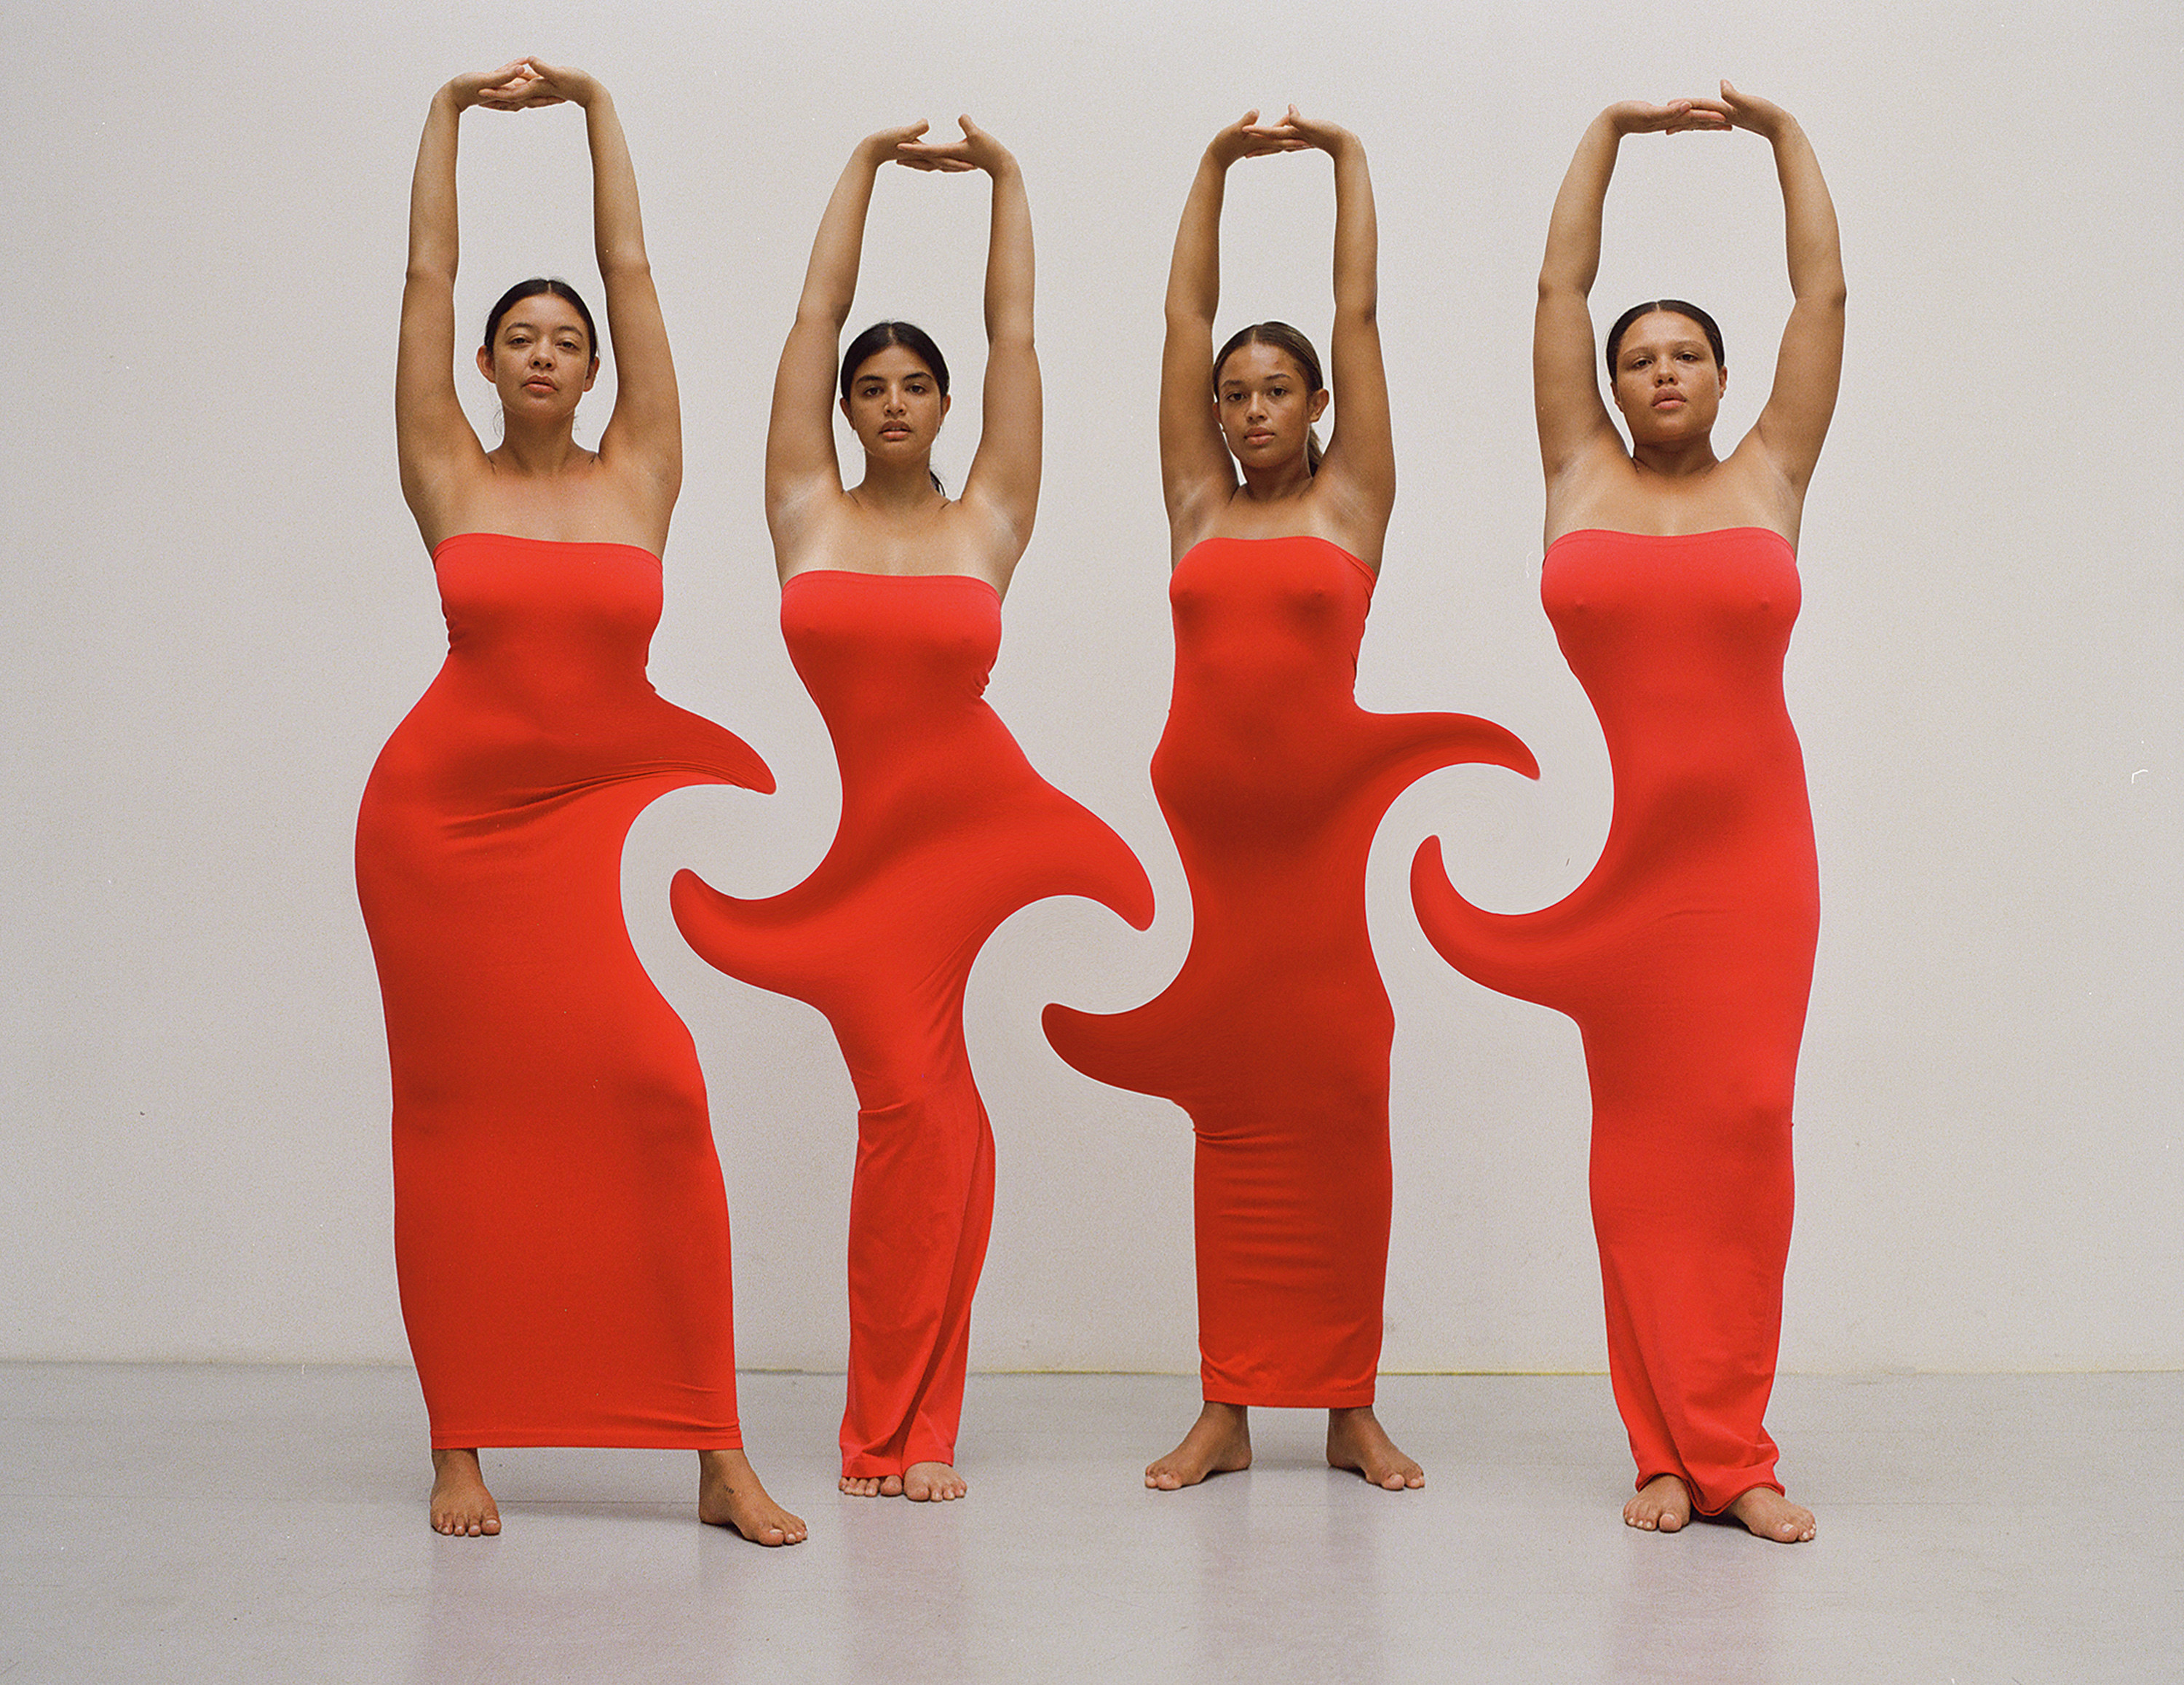 A group of women in red with their torsos swirled together